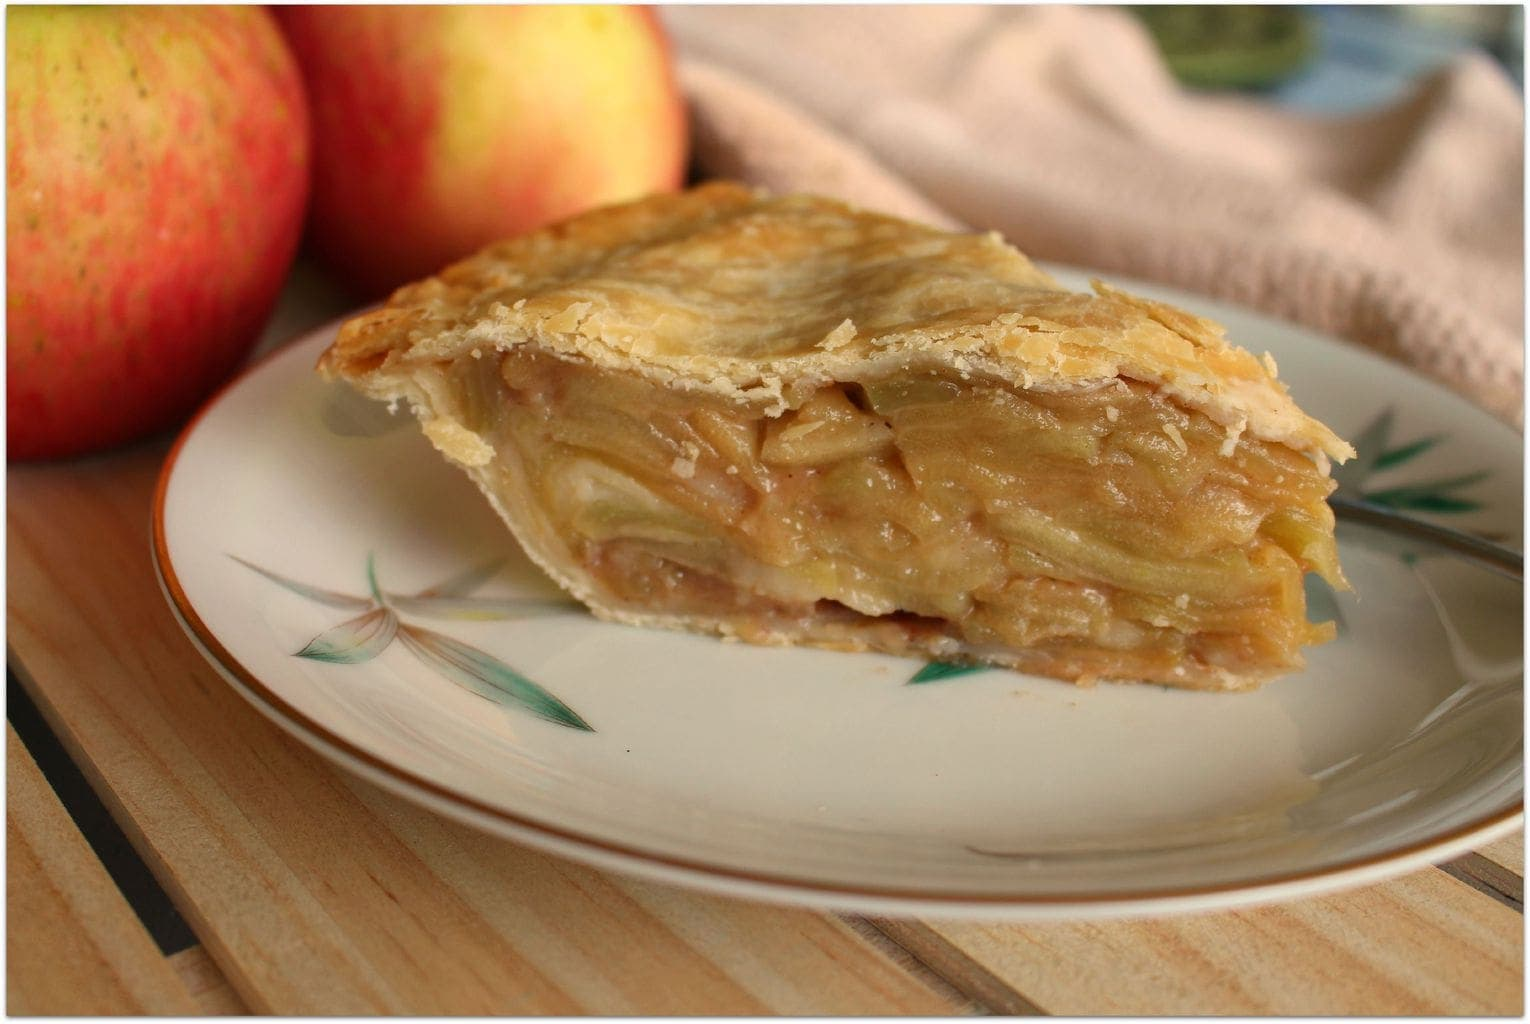 Delicious & Easy Homemade Apple Pie Recipe - Food Fun ...